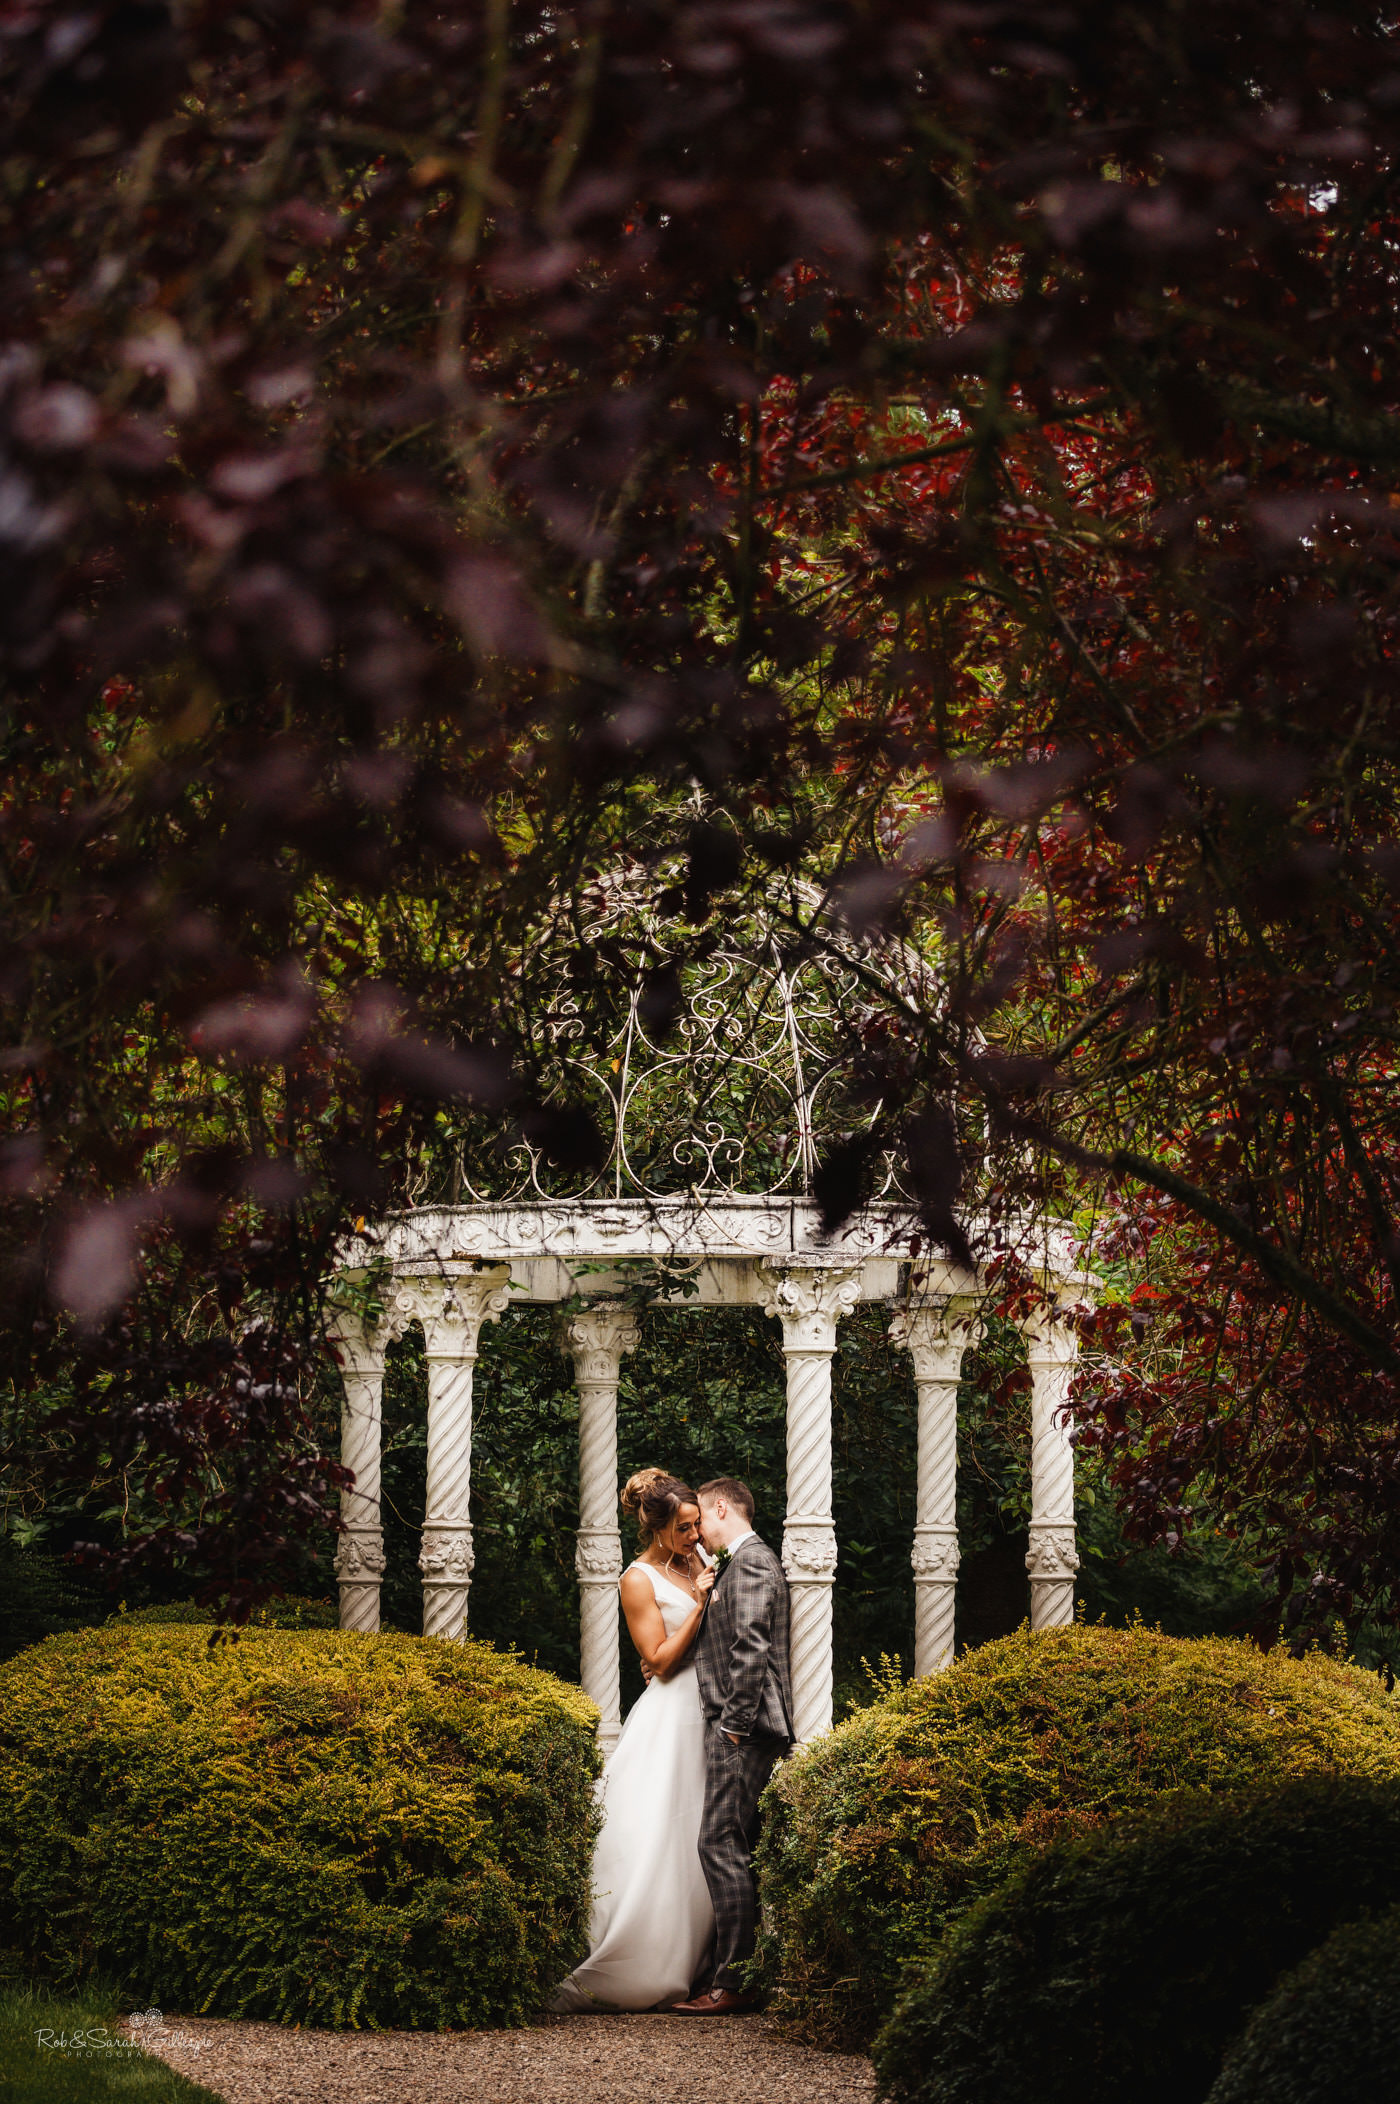 Bride and groom together in gardens at The Mill Barns in Shropshire